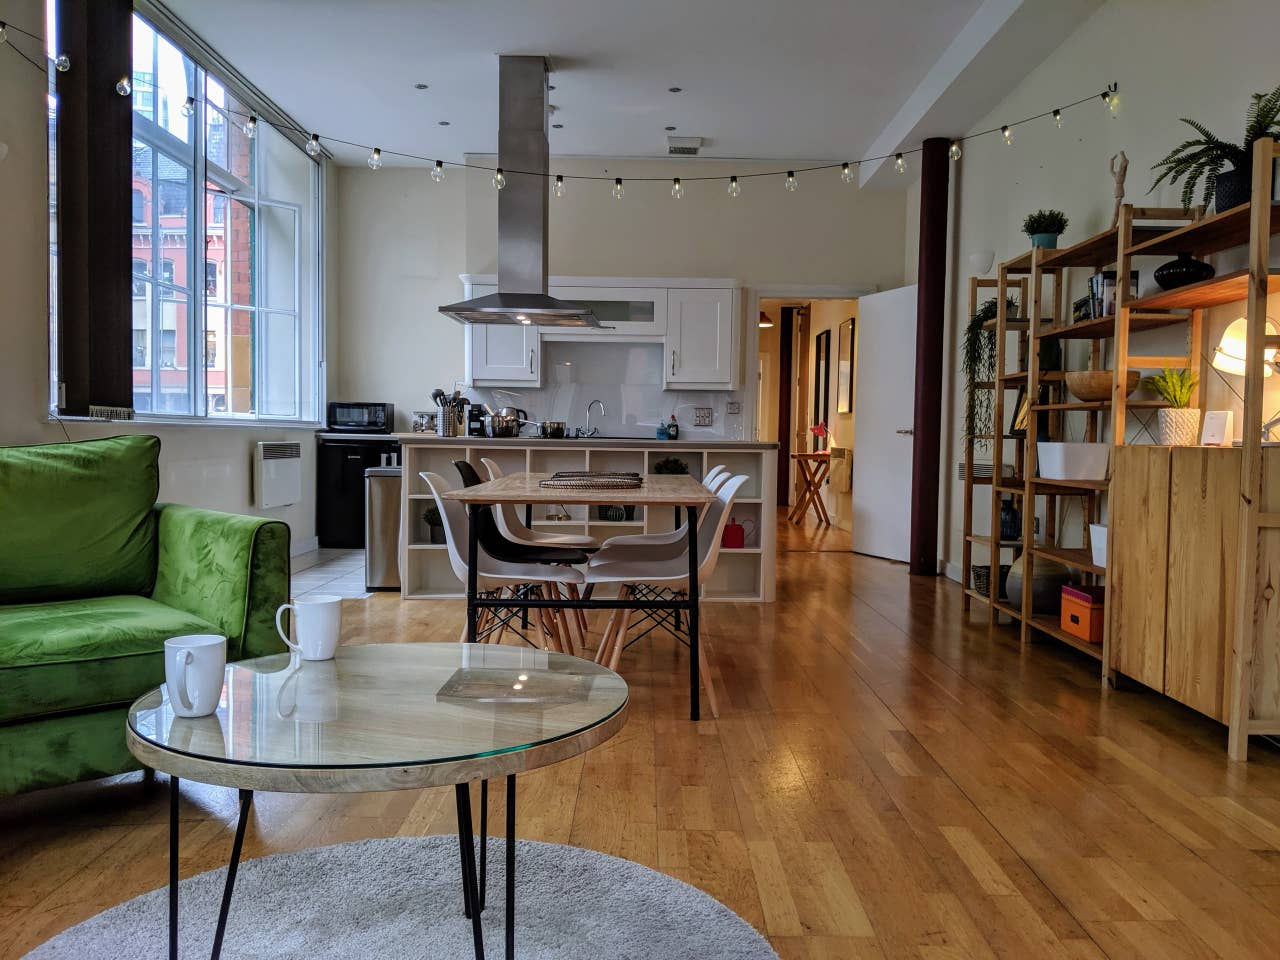 Airbnb Rentals in Manchester